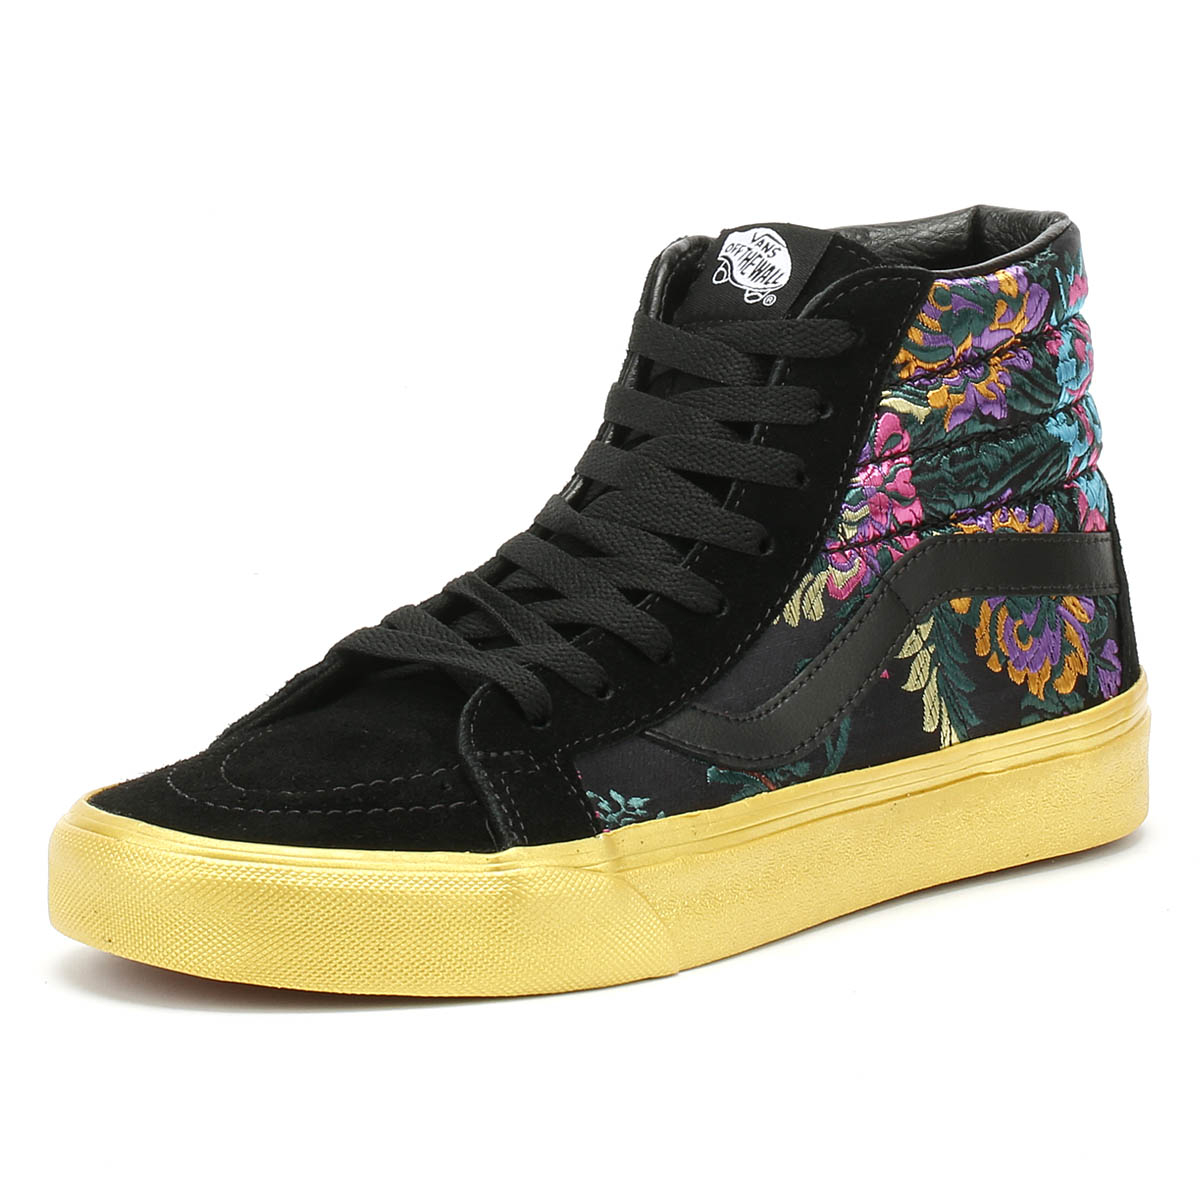 Details about Vans SK8-Hi Reissue Festival Satin Womens Trainers Black  Casual Skate Shoes 25980ef89